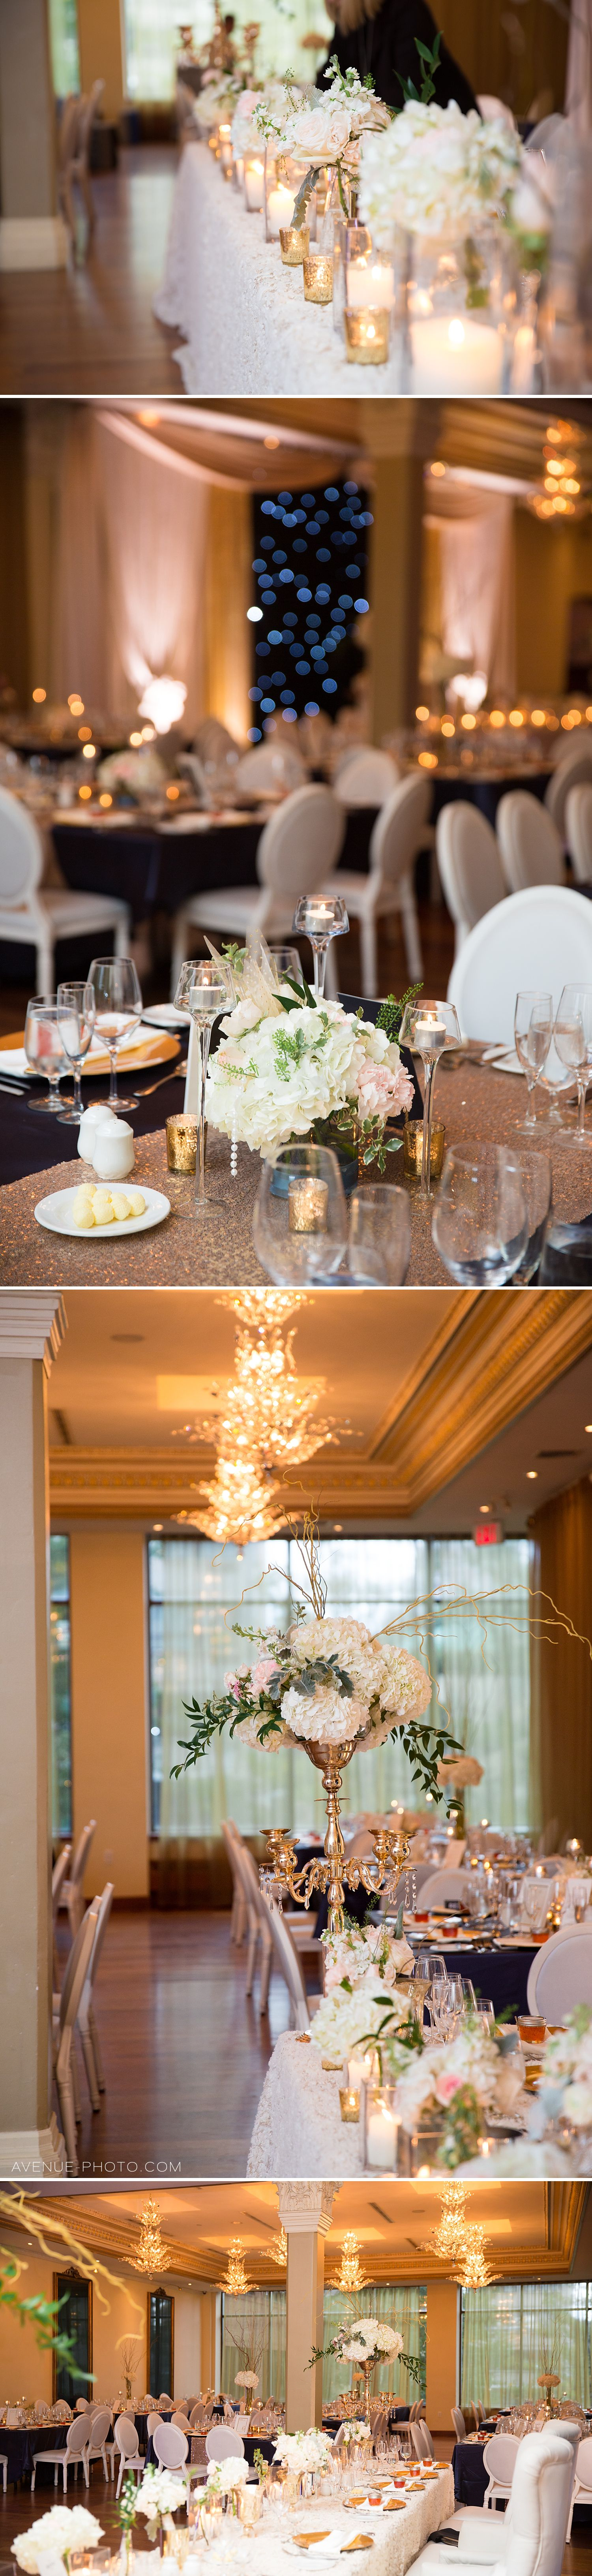 Rosewater Room Wedding, Rosewater Toronto, Rosewater Restaurant, Rosewater Room wedding photography, King Edward Hotel, Omni King Edward, Toronto Wedding Photographer, Jeremy Citron, Liberty Group, Avenue Photo